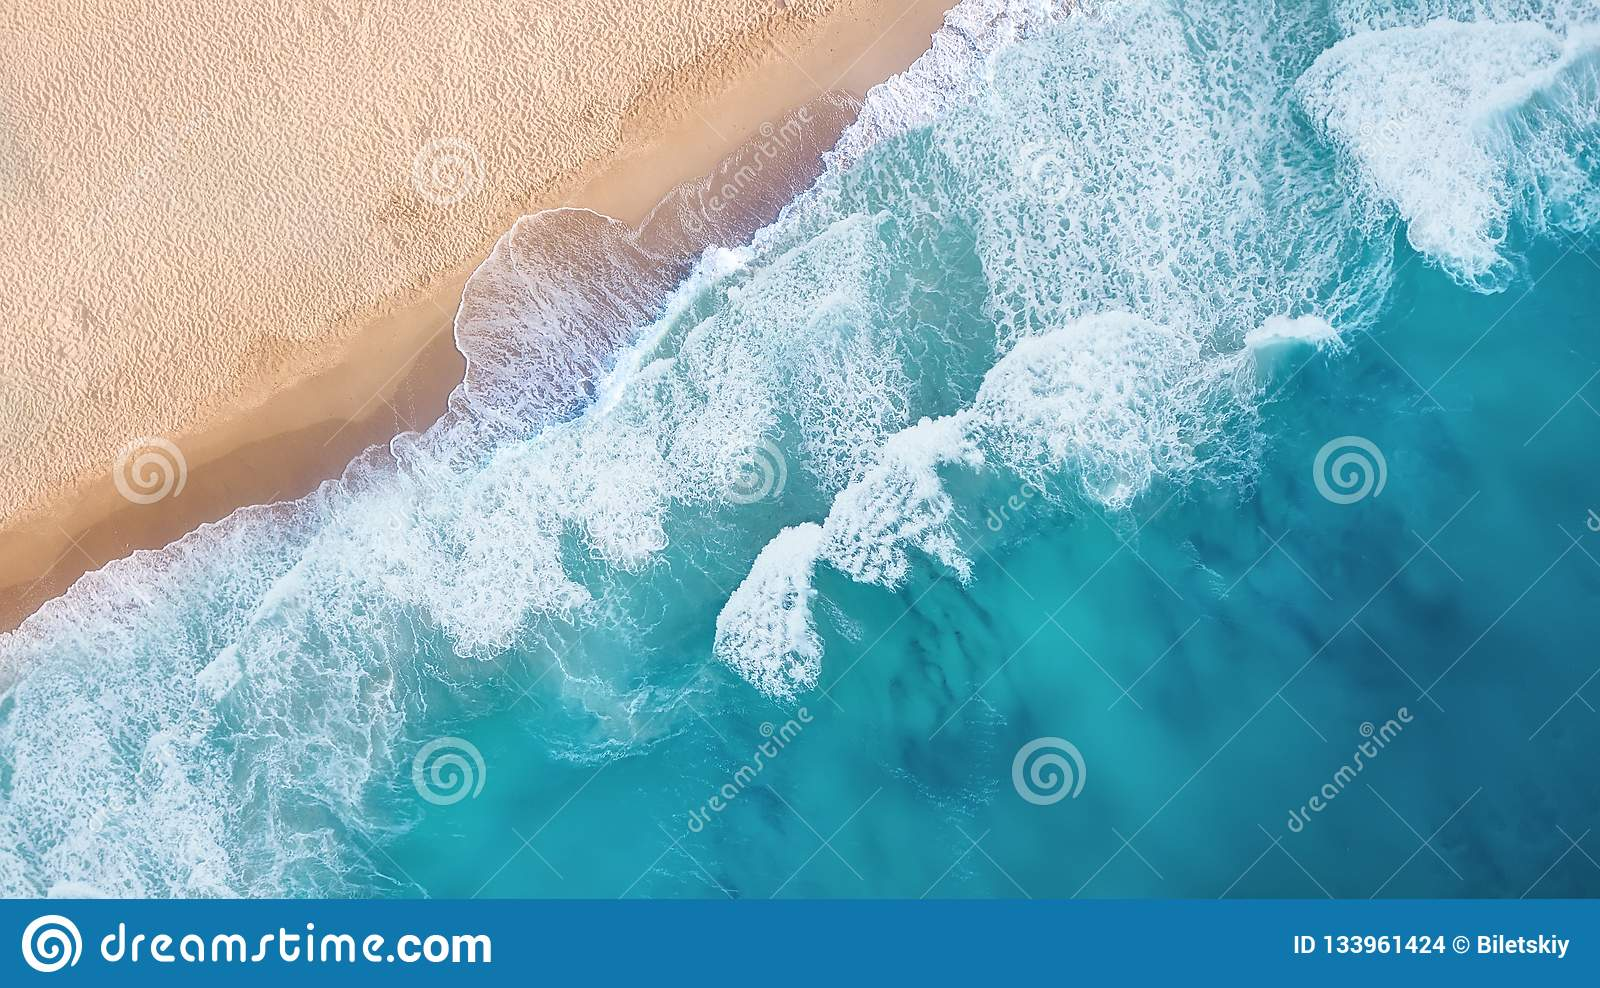 Beach and waves from top view. Turquoise water background from top view.